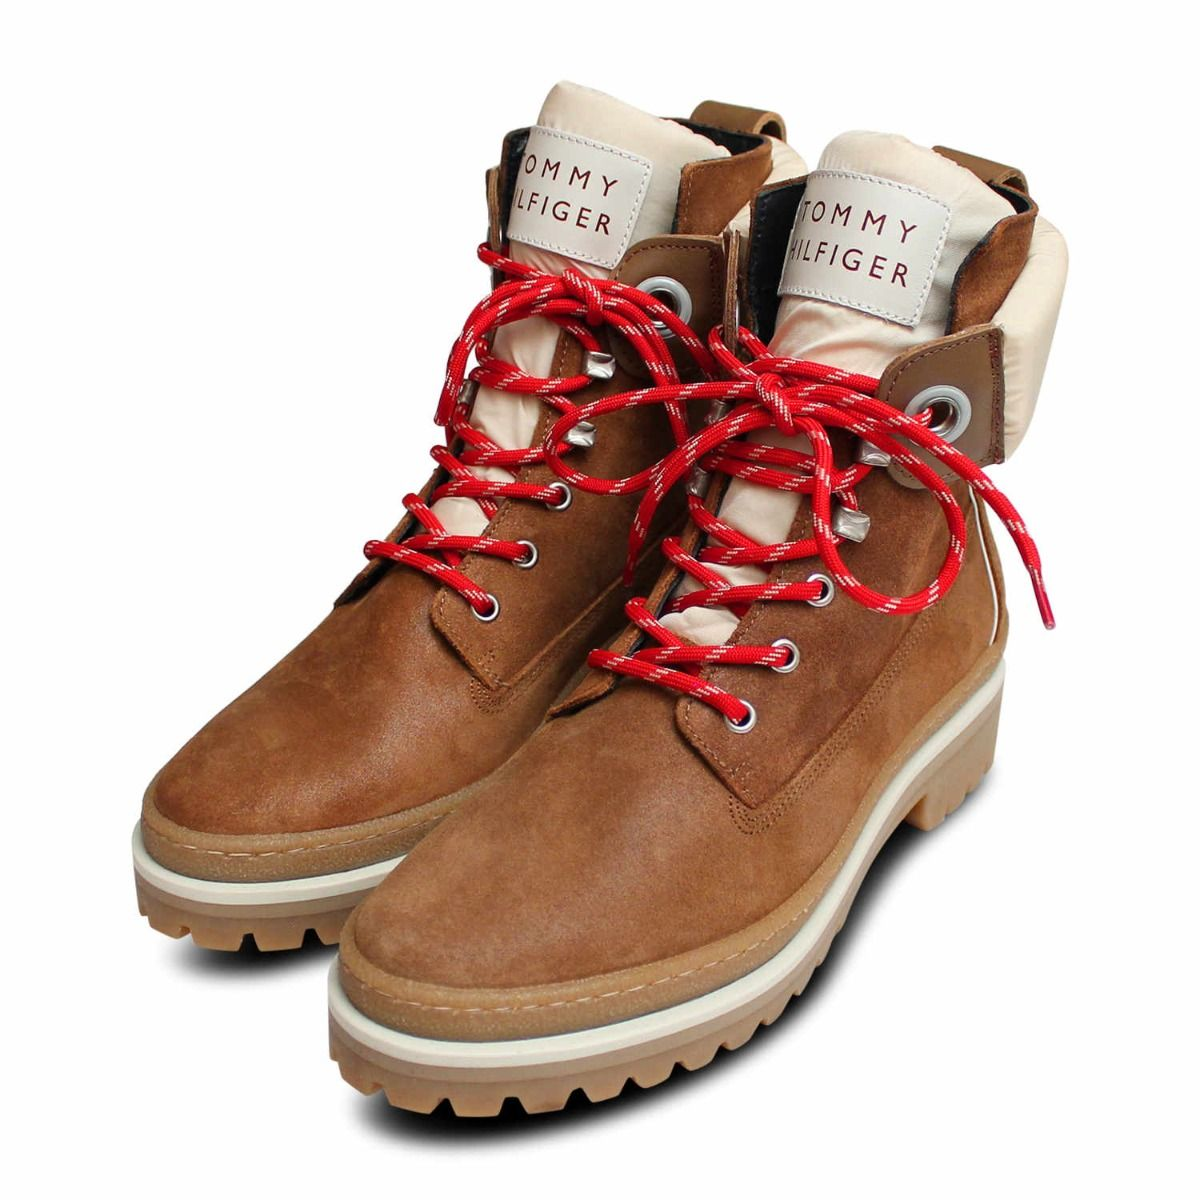 Tommy Hilfiger Sporty Outdoor Lace Up